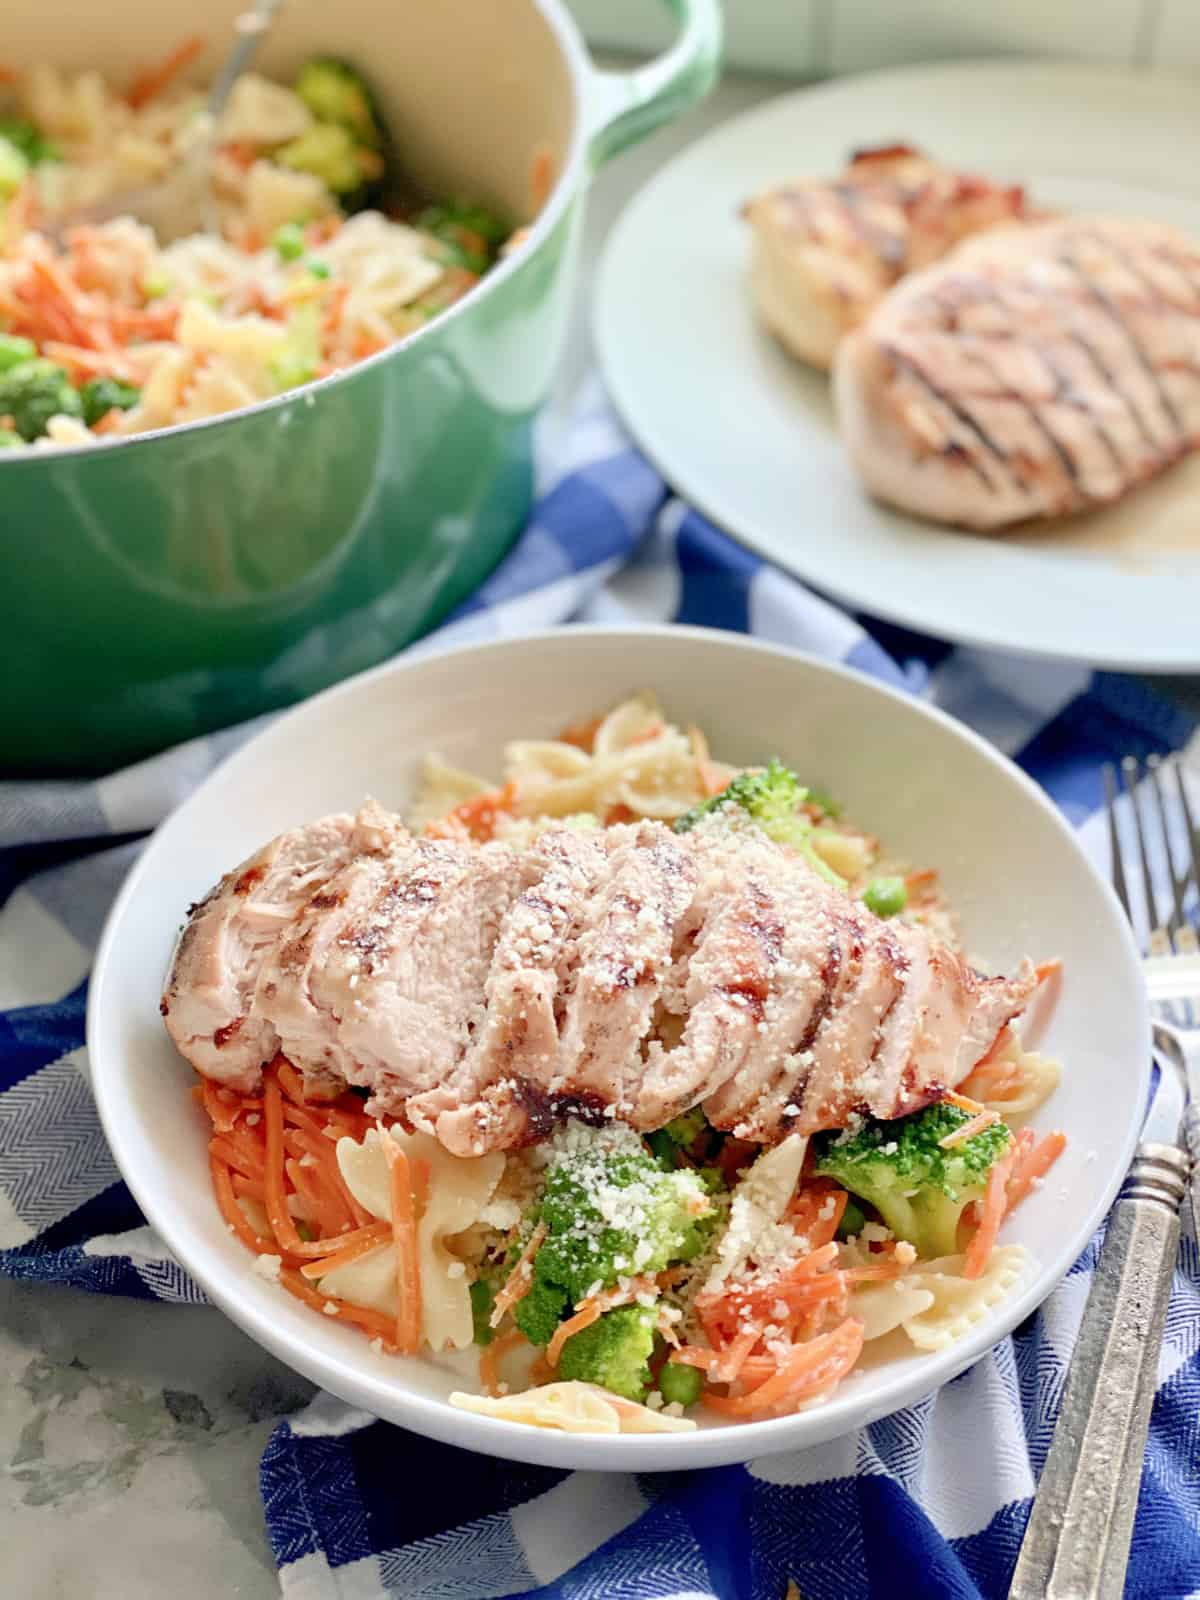 Bowl full of Grilled Chicken Pasta with veggies with a plate of chicken breast in background.